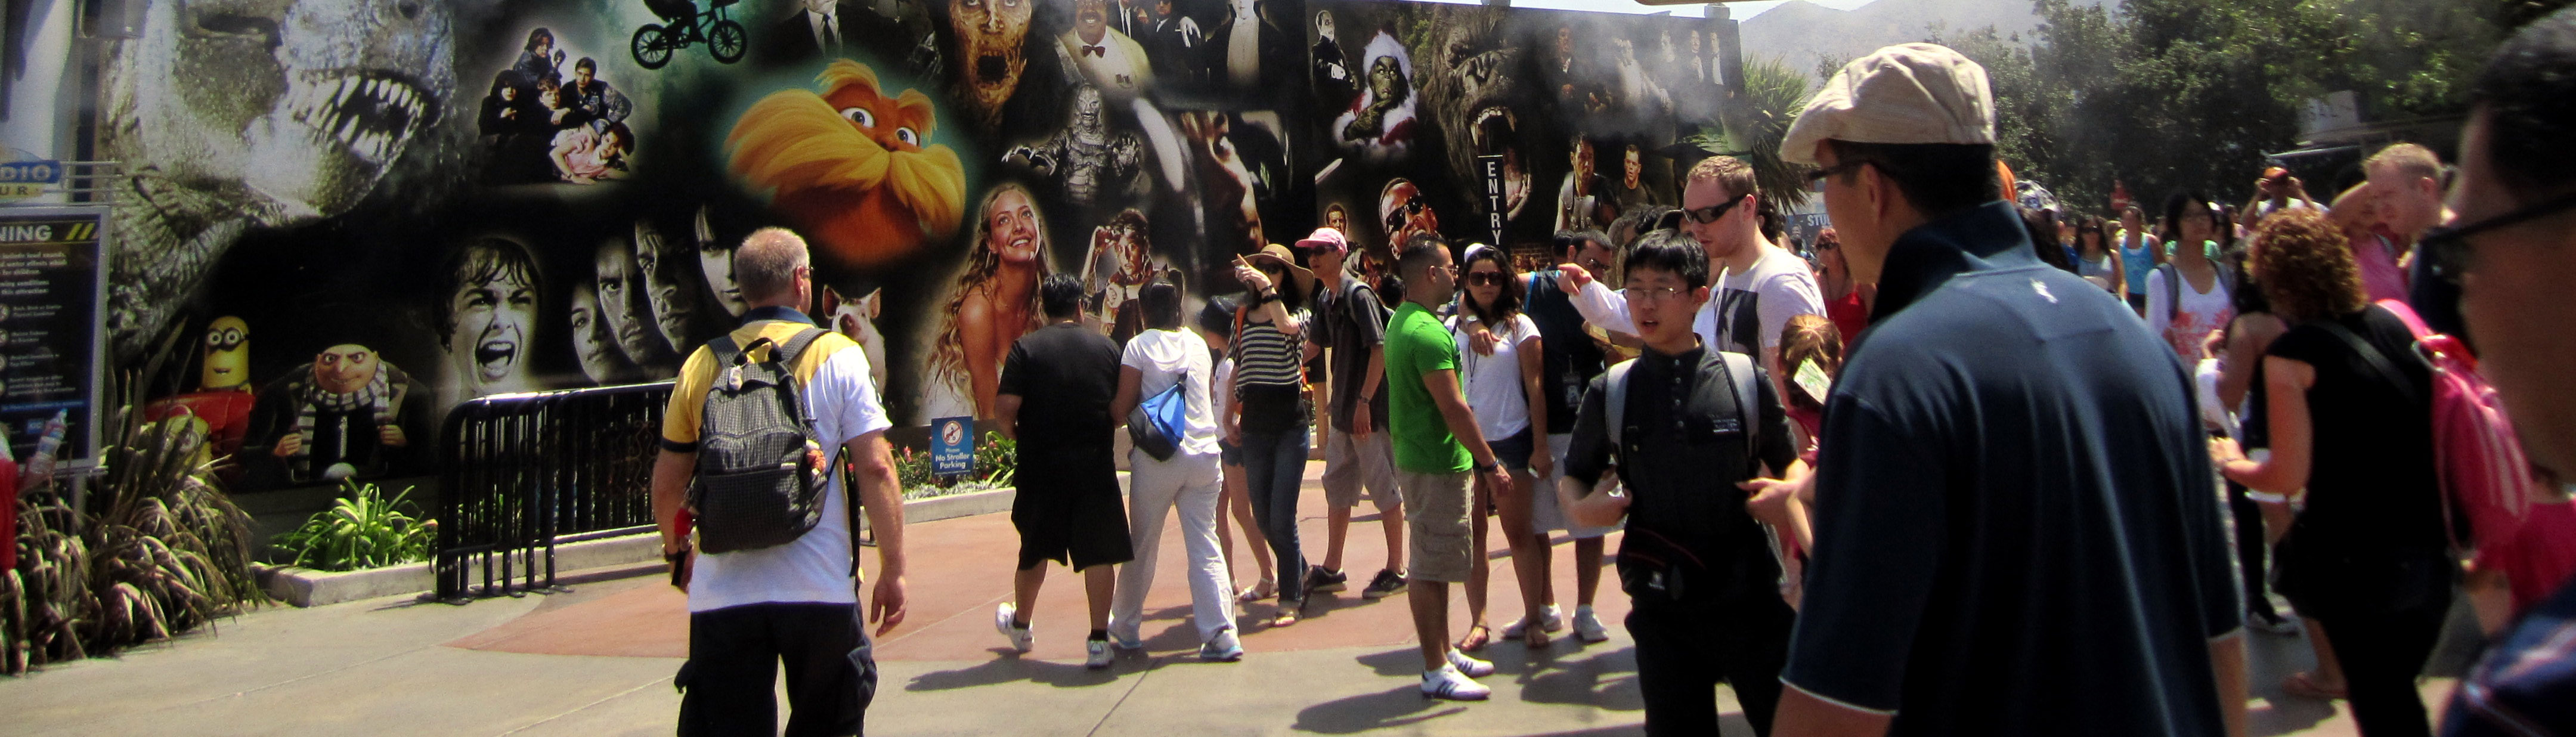 Universal Studios Hollywood and Theme park- Los Angeles, California (1)